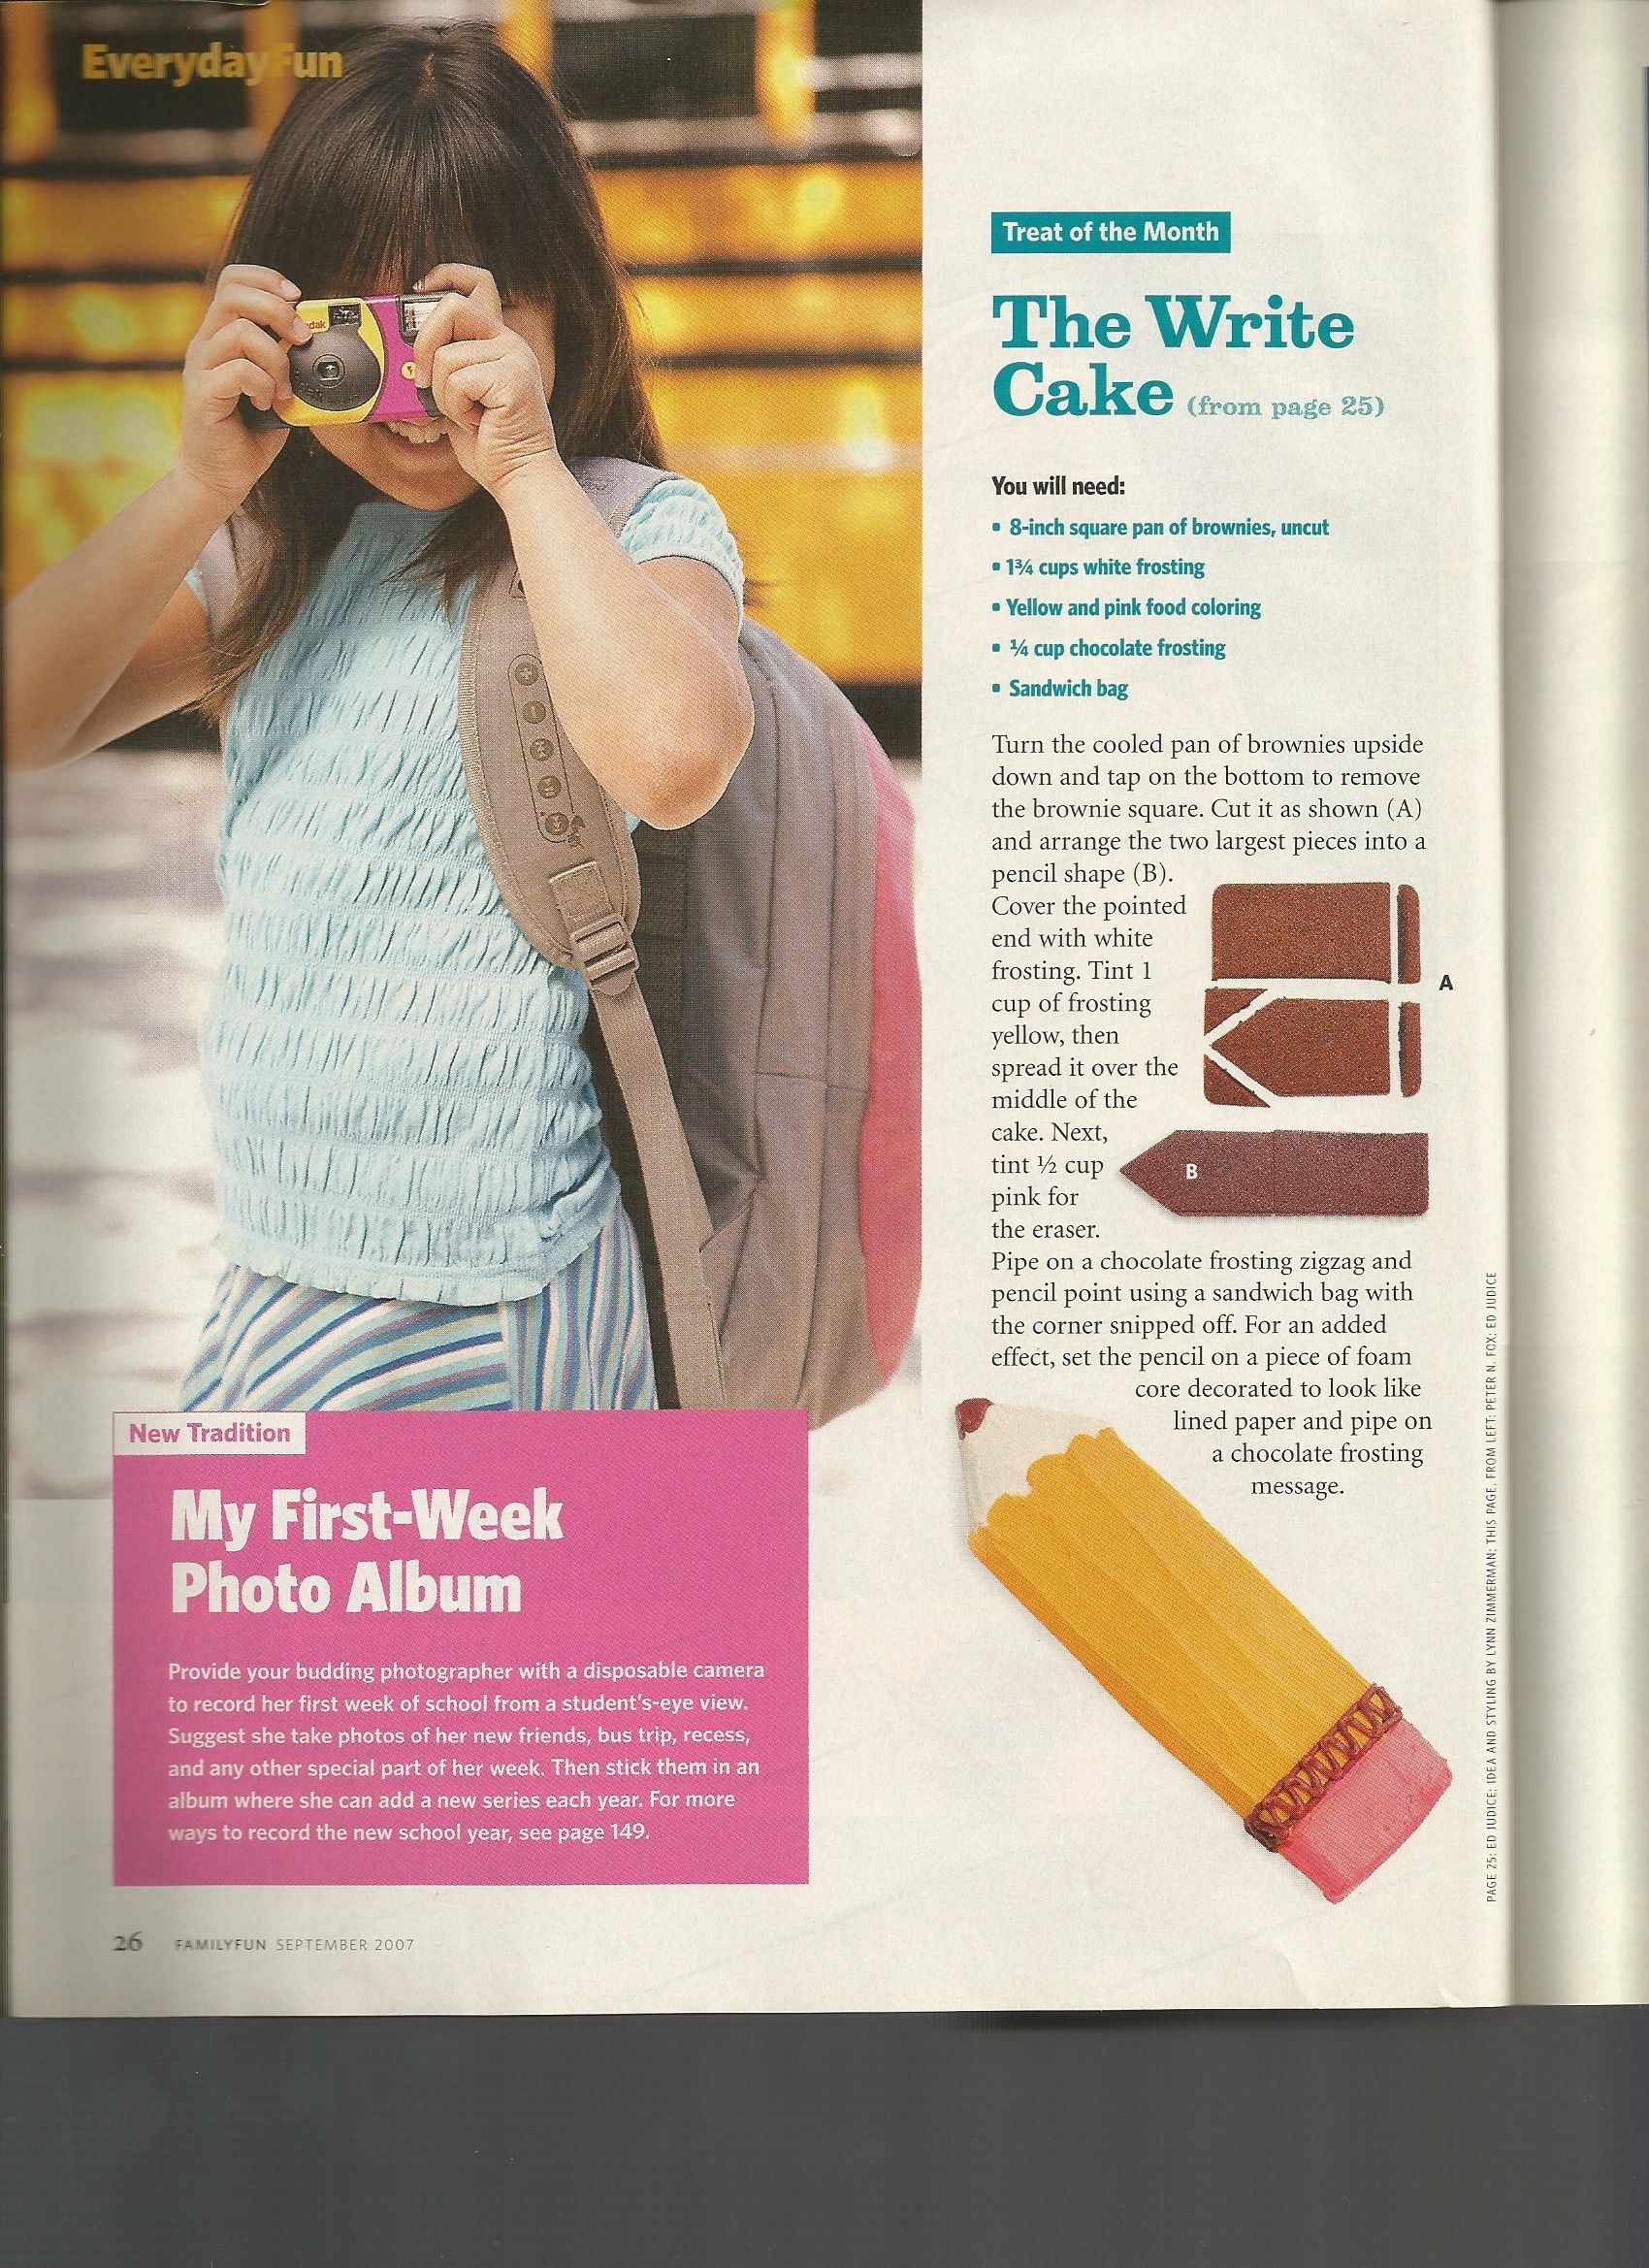 Directions For Pencil Cake From Family Fun Magazine September 2007 Issue